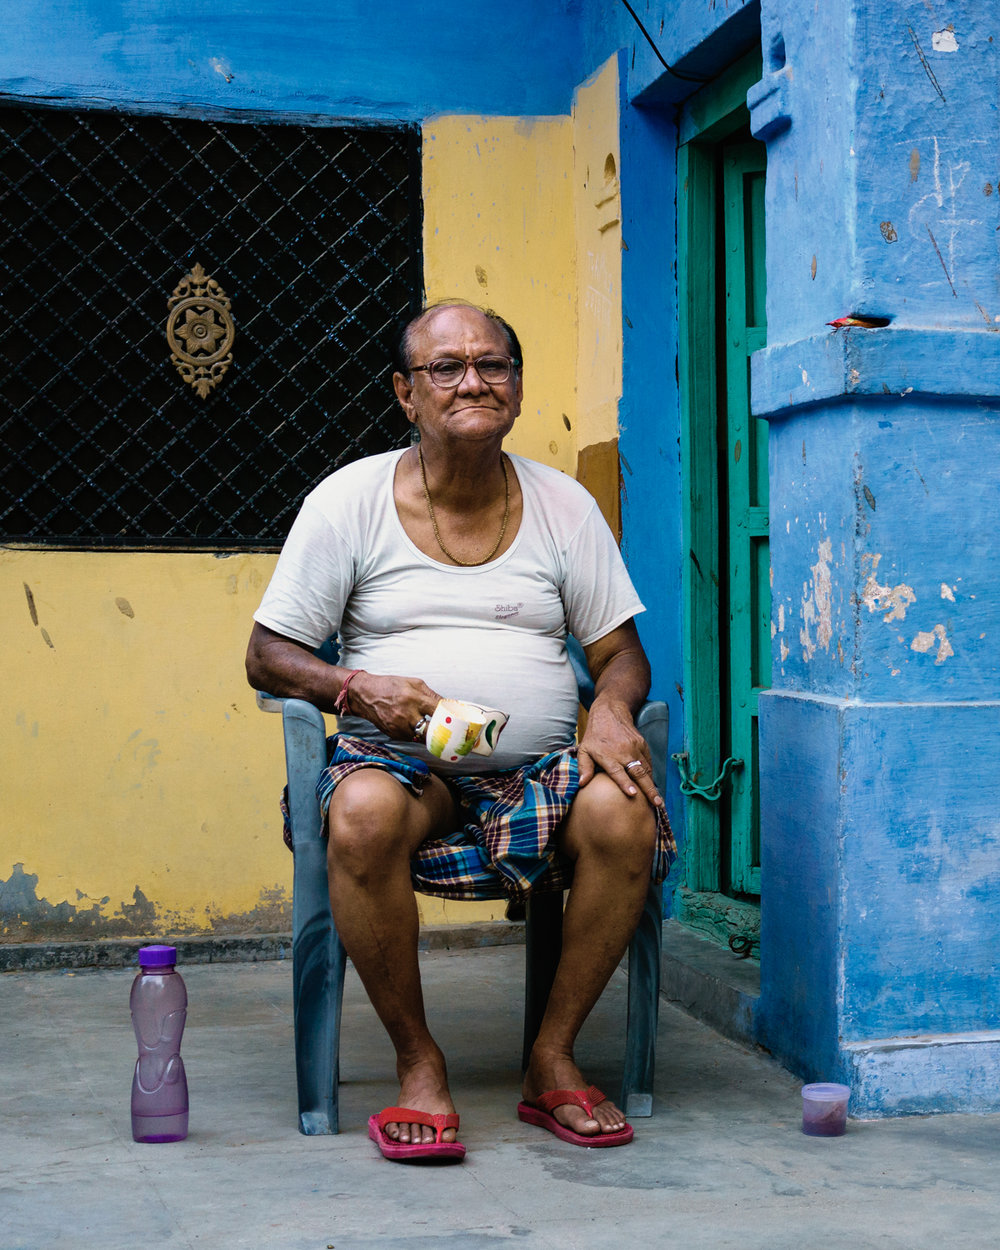 A elderly man drinks tea outside of his house in the Blue City.